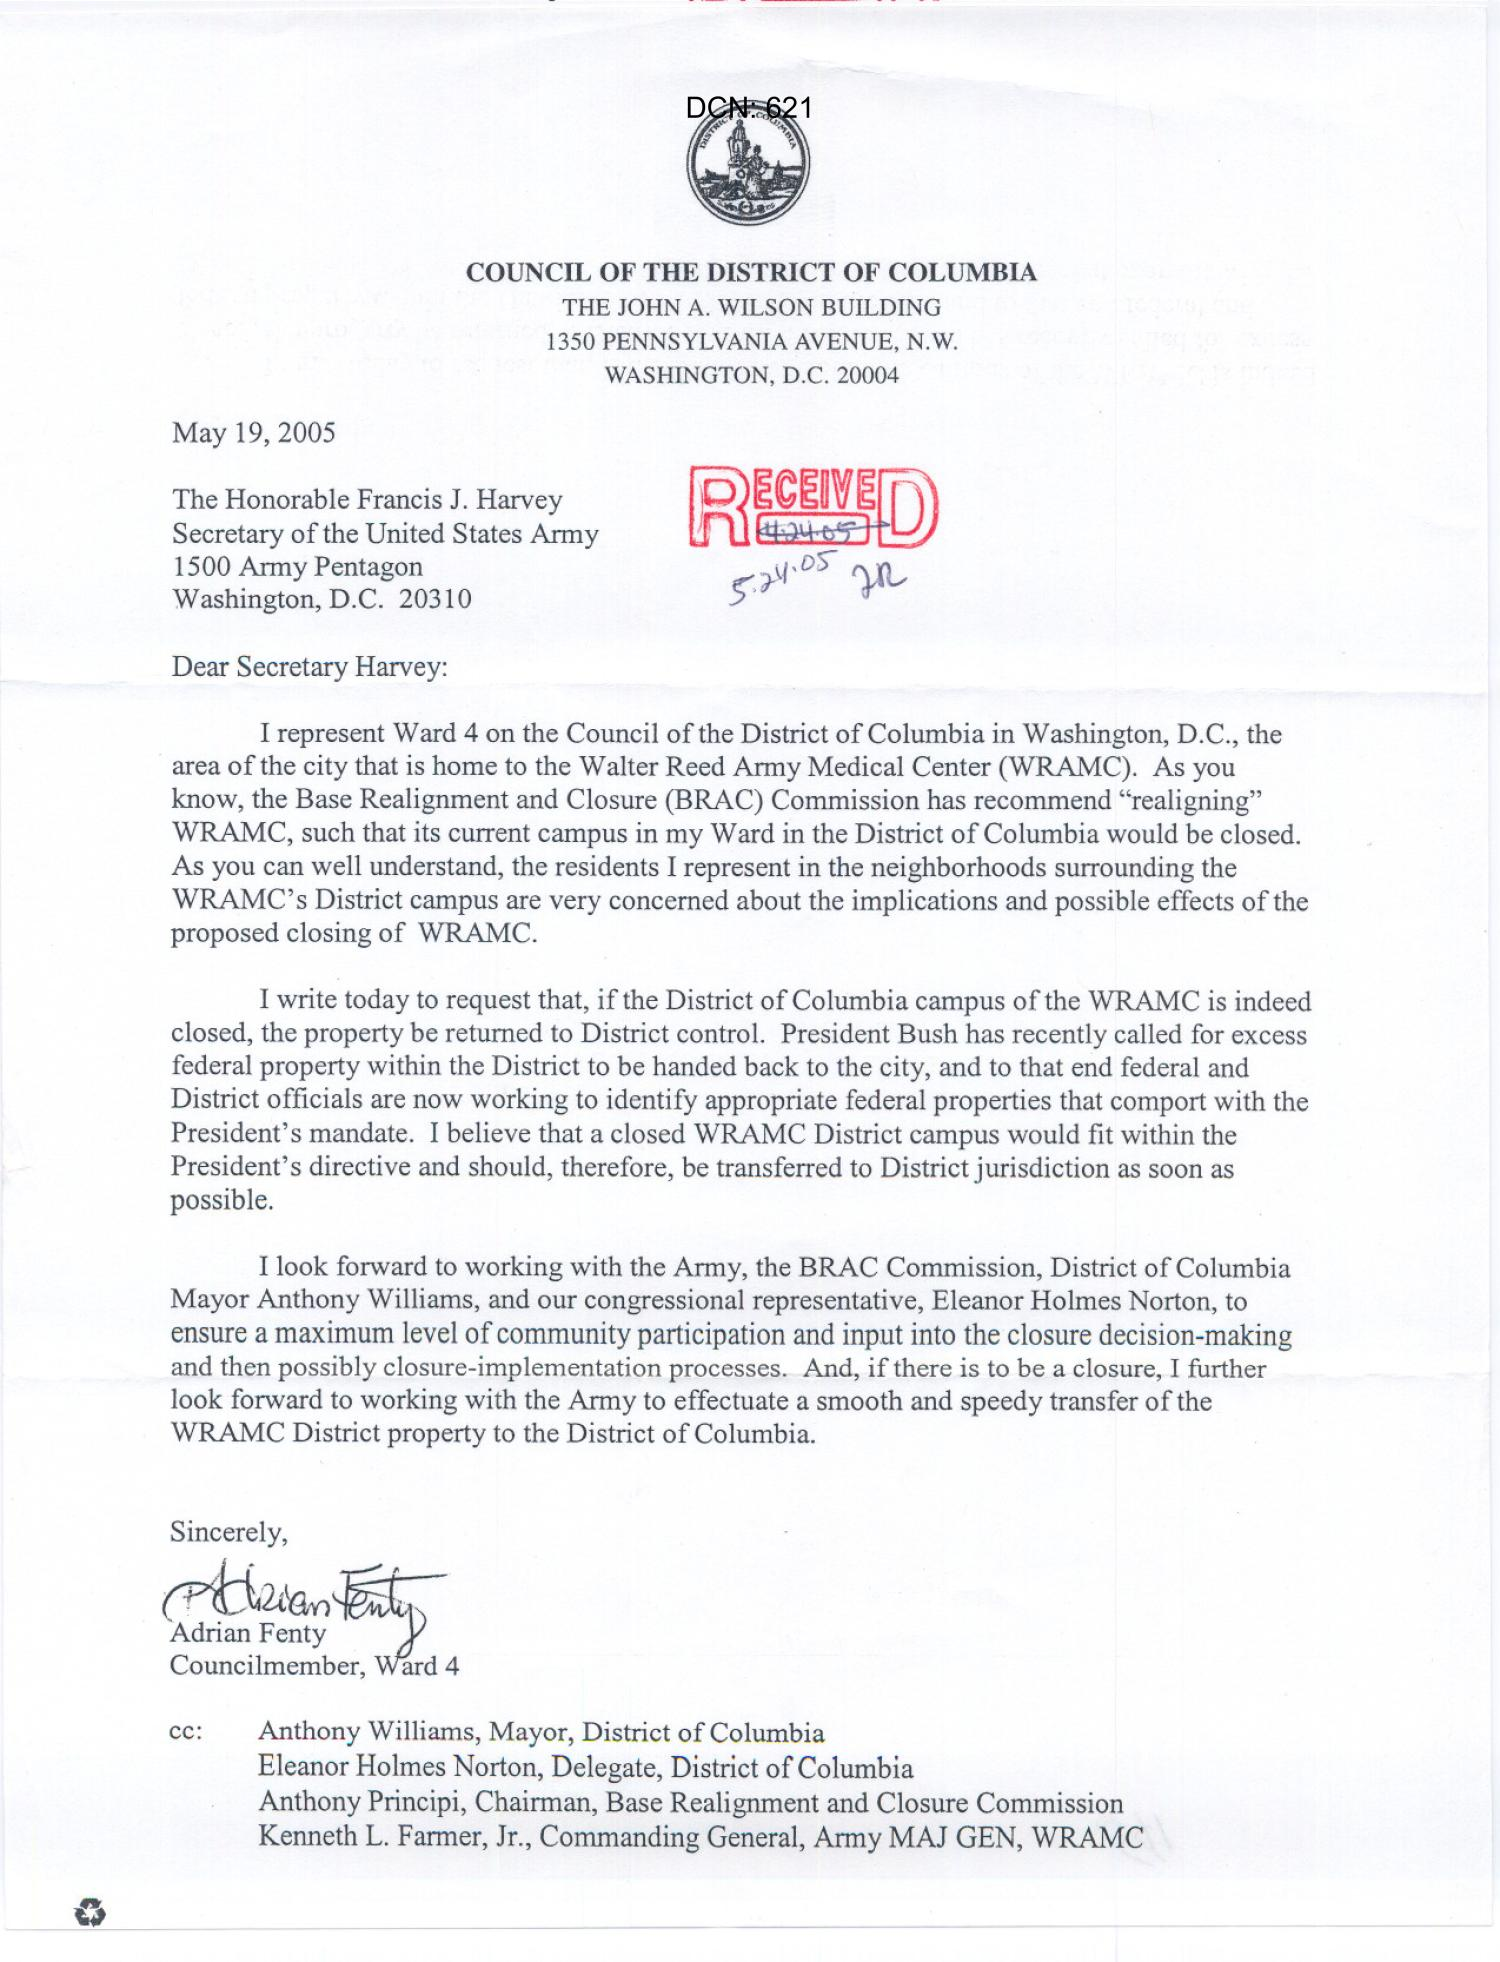 Walter Reed - LTR - ICO: Adrien Fenty                                                                                                      [Sequence #]: 1 of 1